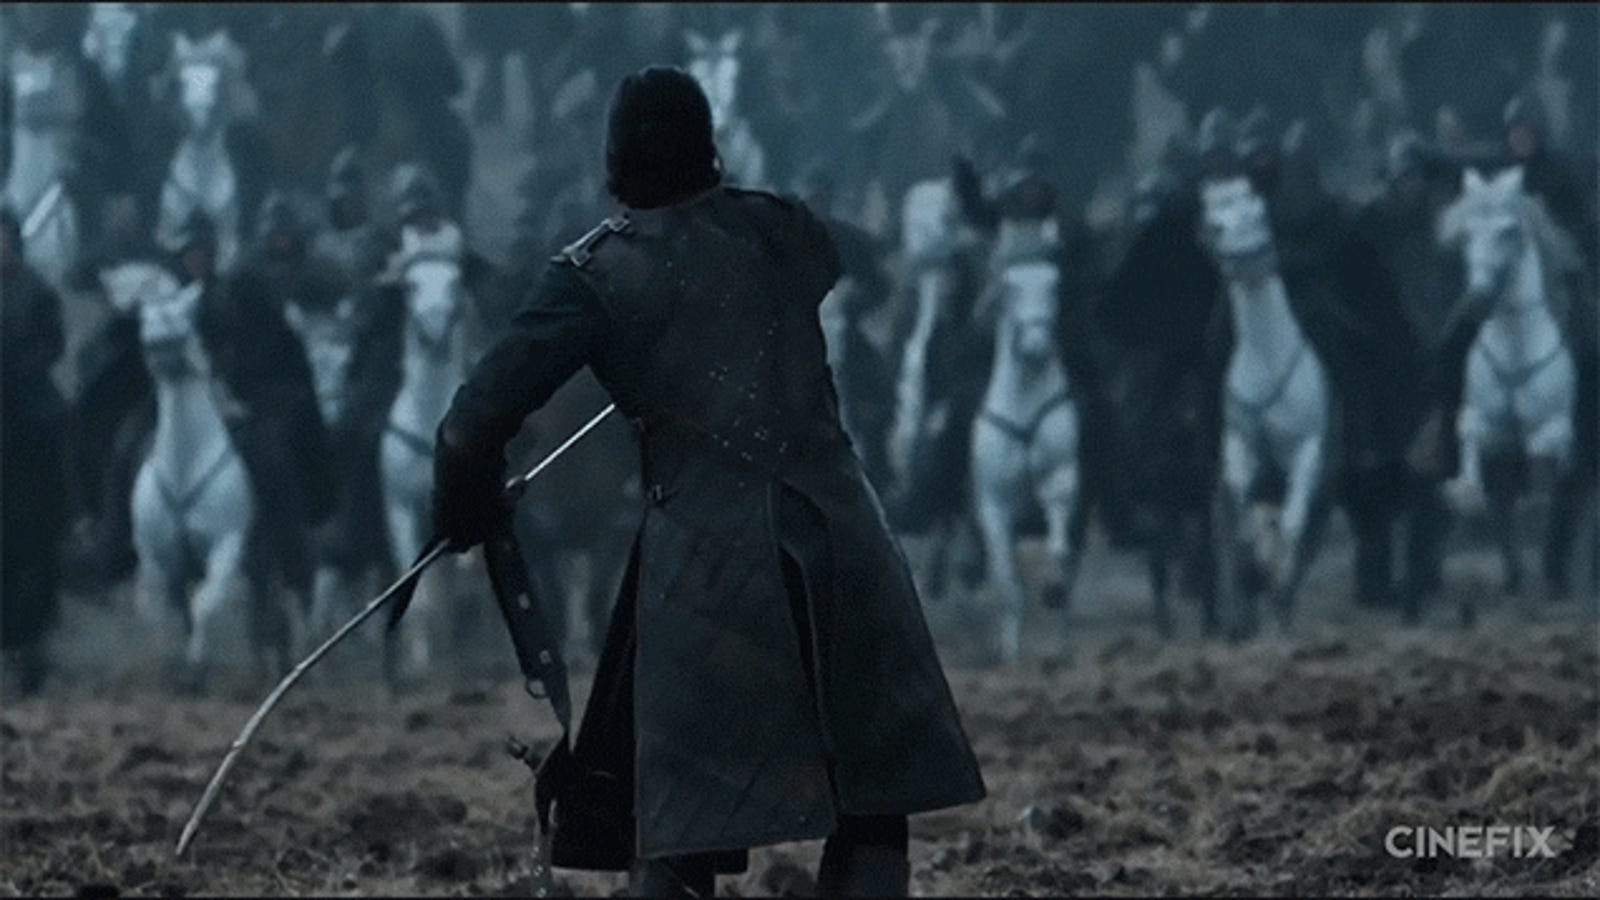 An In-Depth Analysis of Why Game of Thrones' Battle of the Bastards Was So Fantastic